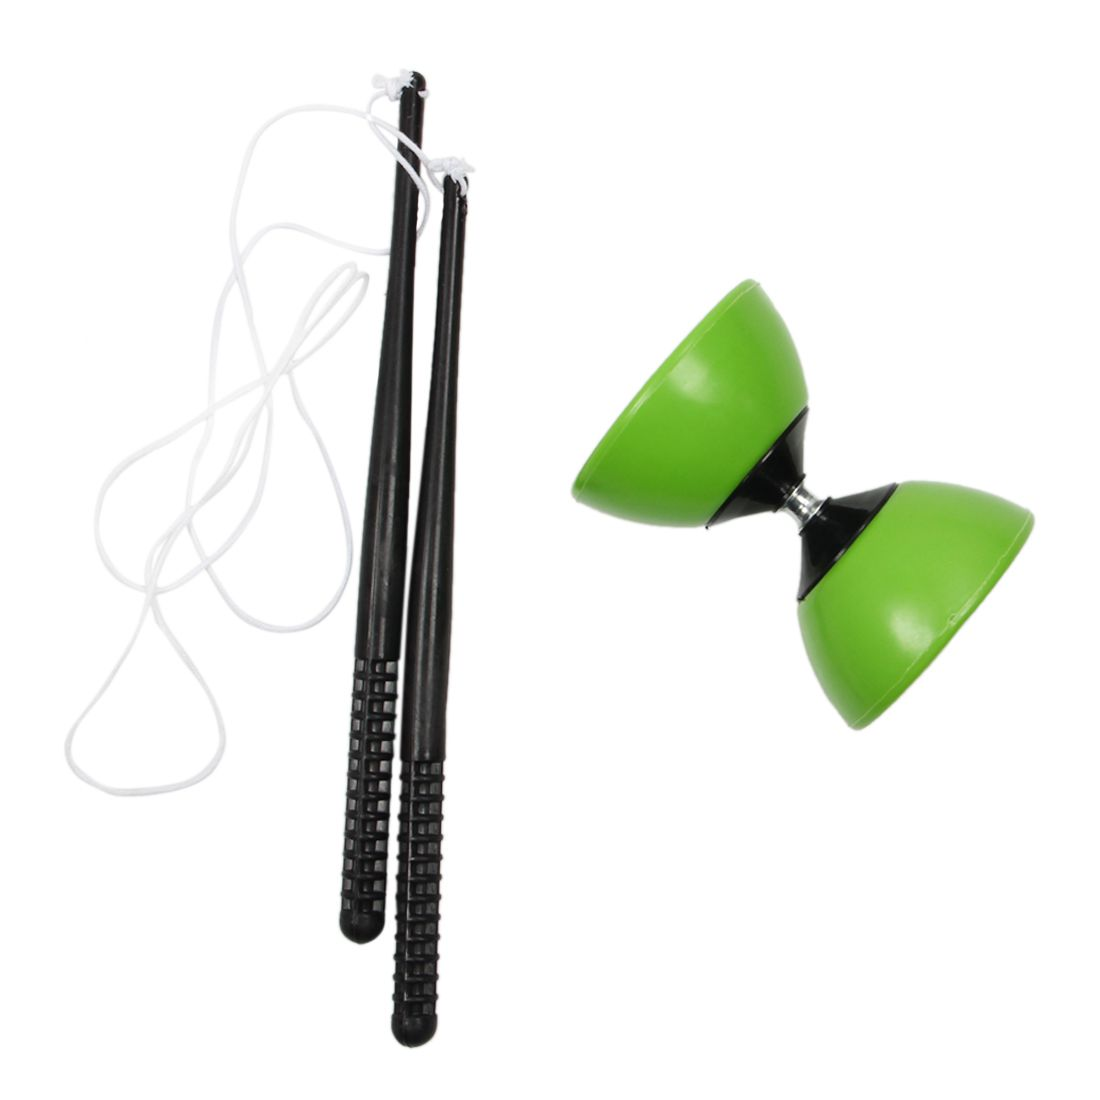 Plastic Bowl Diabolo Juggling Spinning Chinese Yo Yo Classic Toy with Hand Sticks Green magicyoyo n12 aluminum alloy yo yo toy army green silver